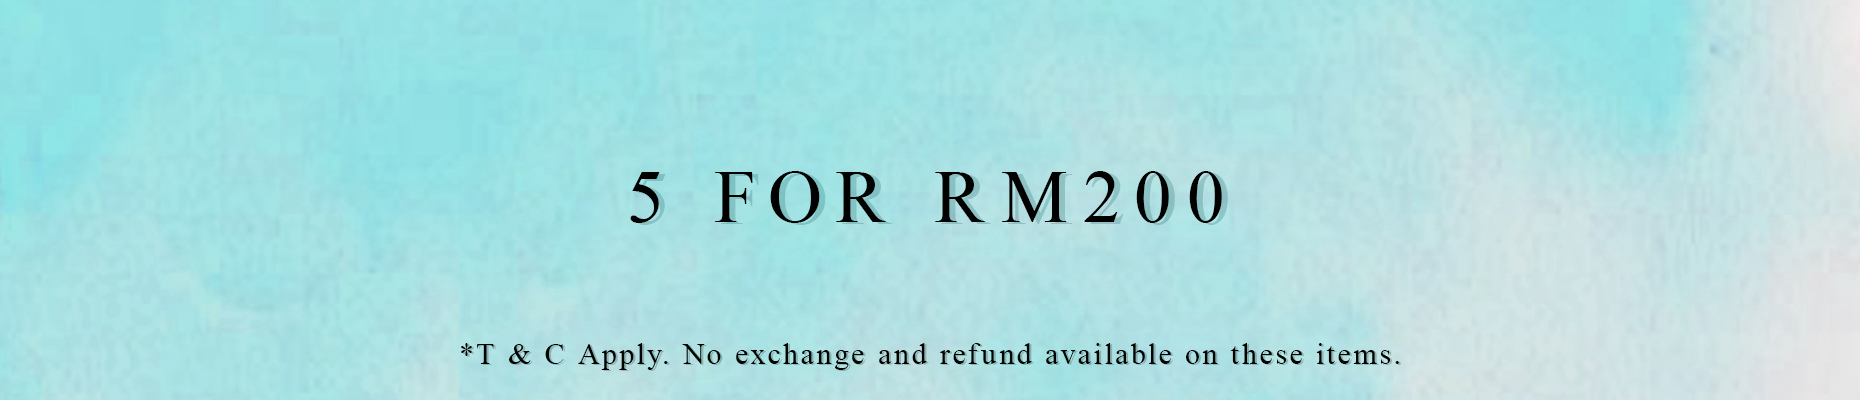 5 For RM200